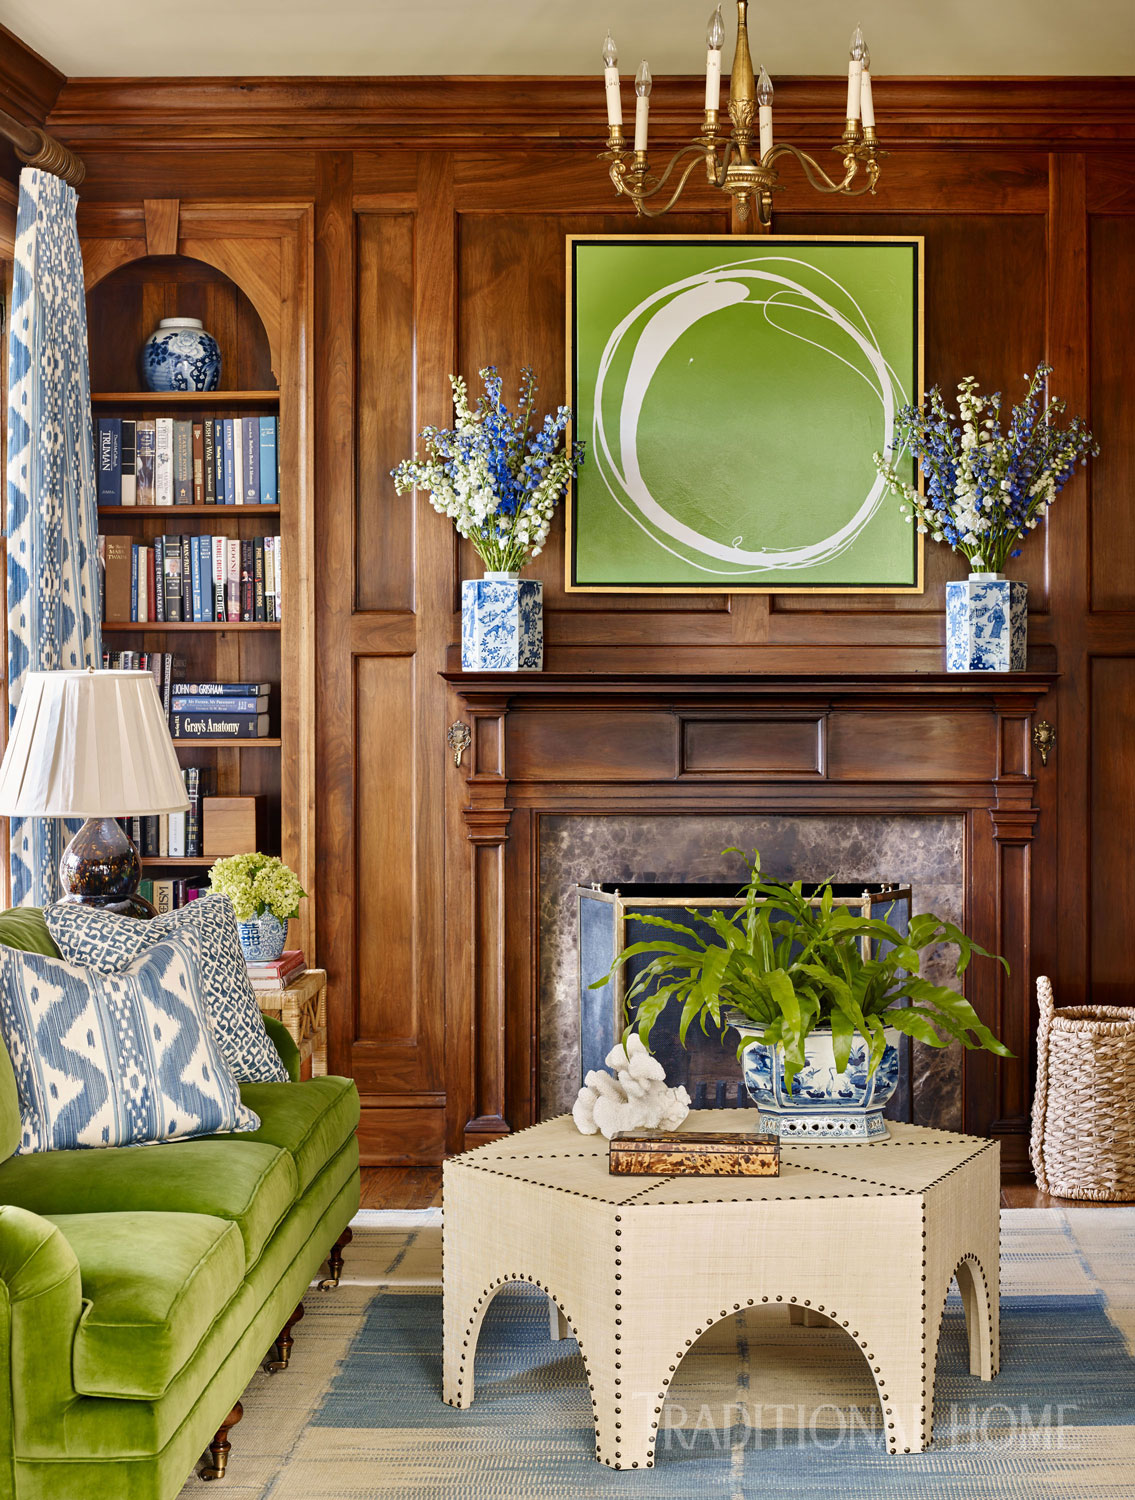 Fresh greens in art and upholstery bring energy to Mike's favorite retreat.